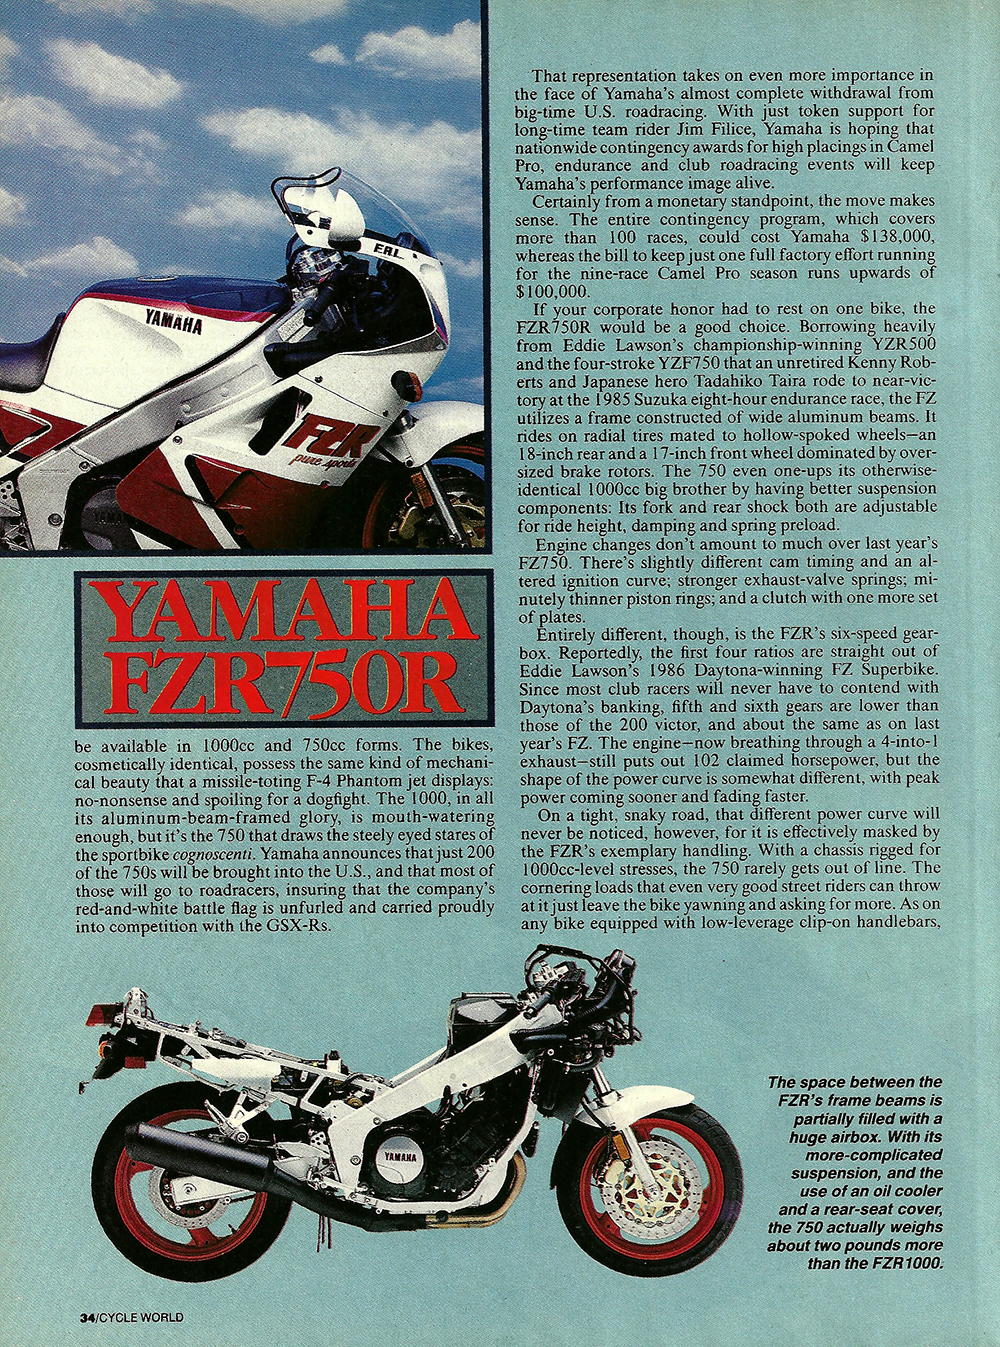 1987 Yamaha FZR750R road test 03.jpg